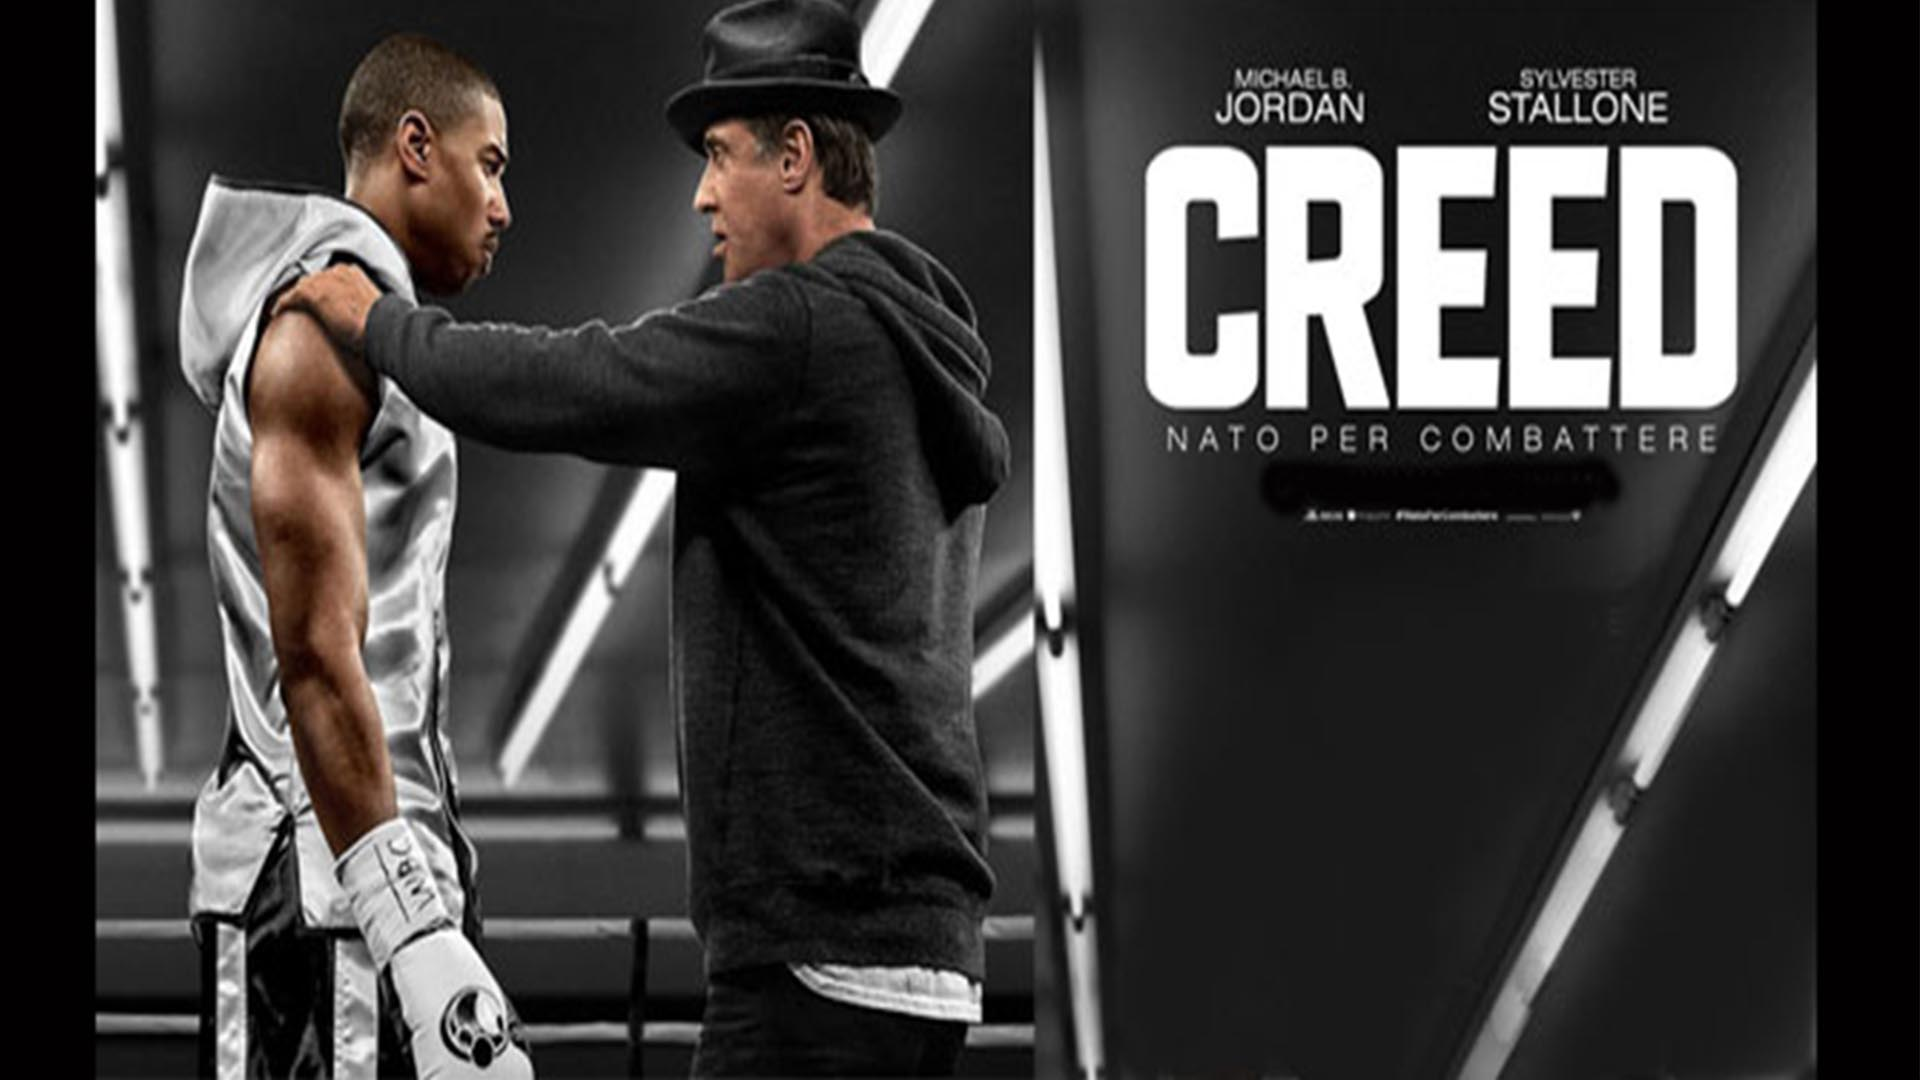 Creed nato per combattere Tv8